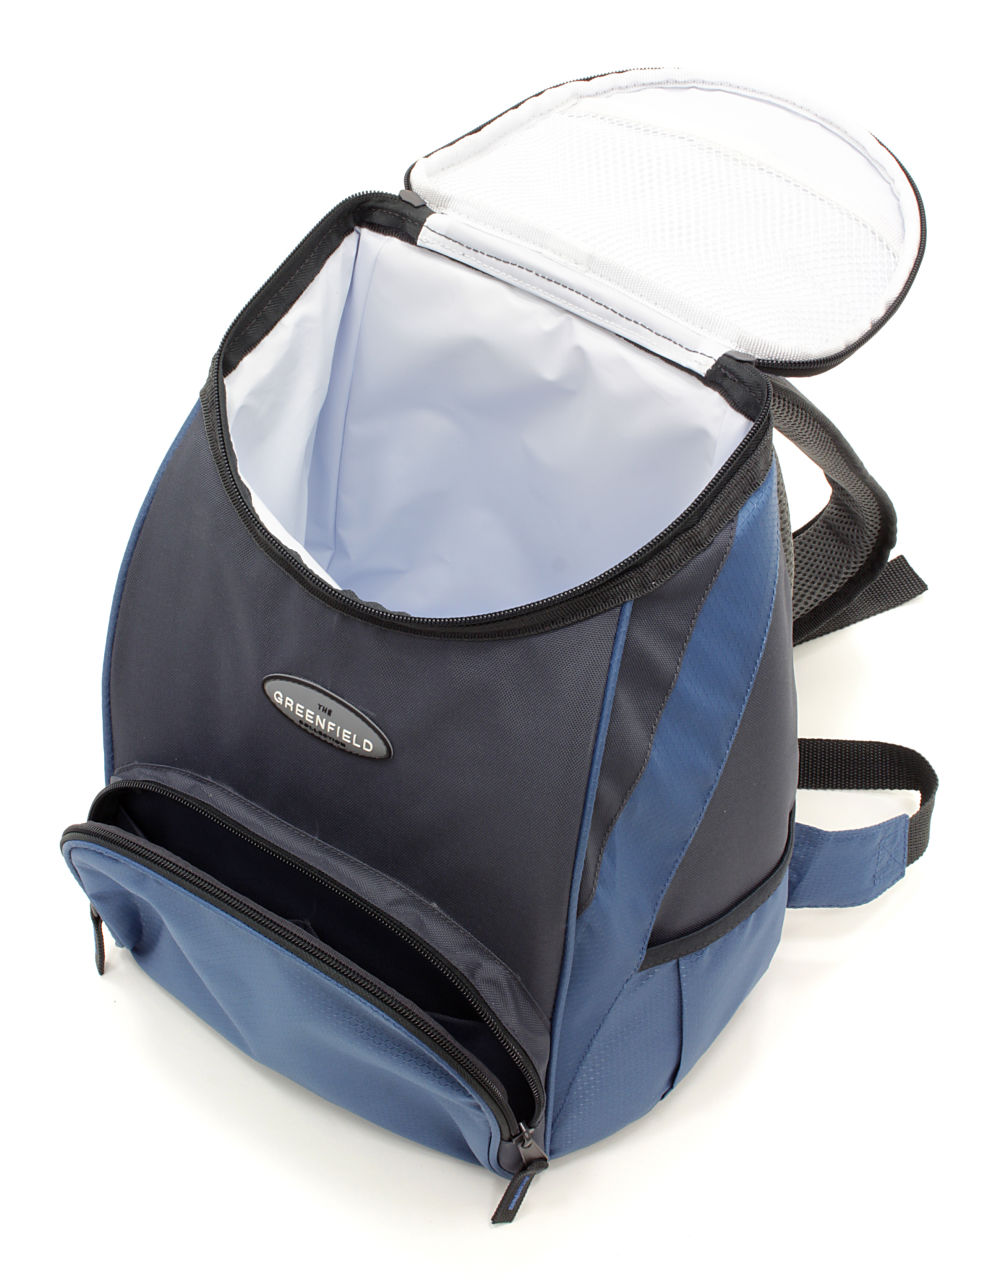 16 Litre Powder Blue Backpack Cool Bag Picnicware